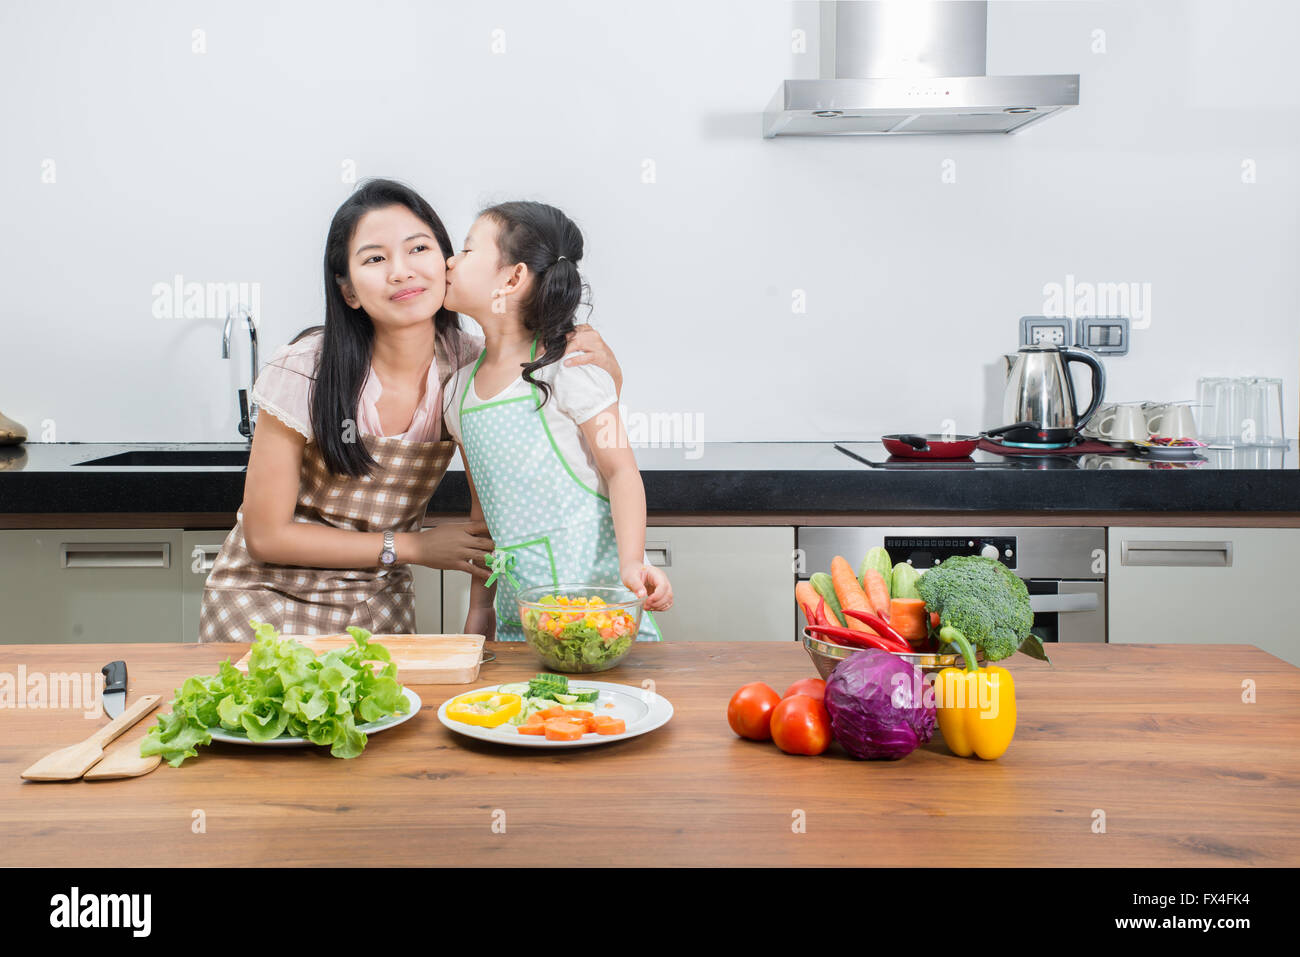 family, children and happy people concept - Asian mother and kid daughter cooking in the kitchen at home - Stock Image